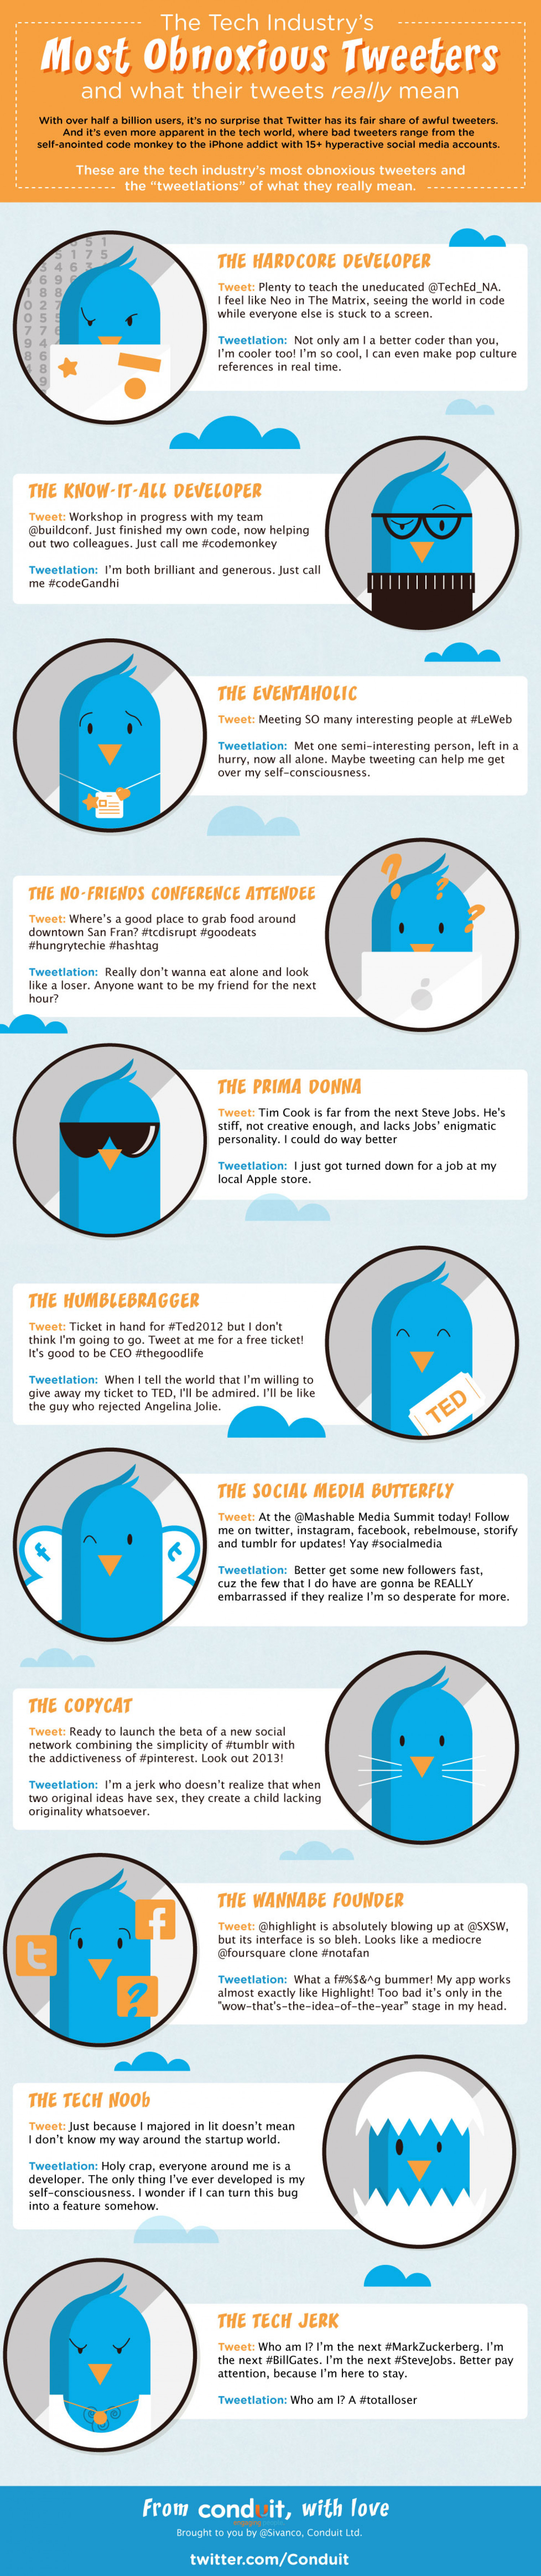 The Tech Industry's Most Obnoxious Tweeters Infographic